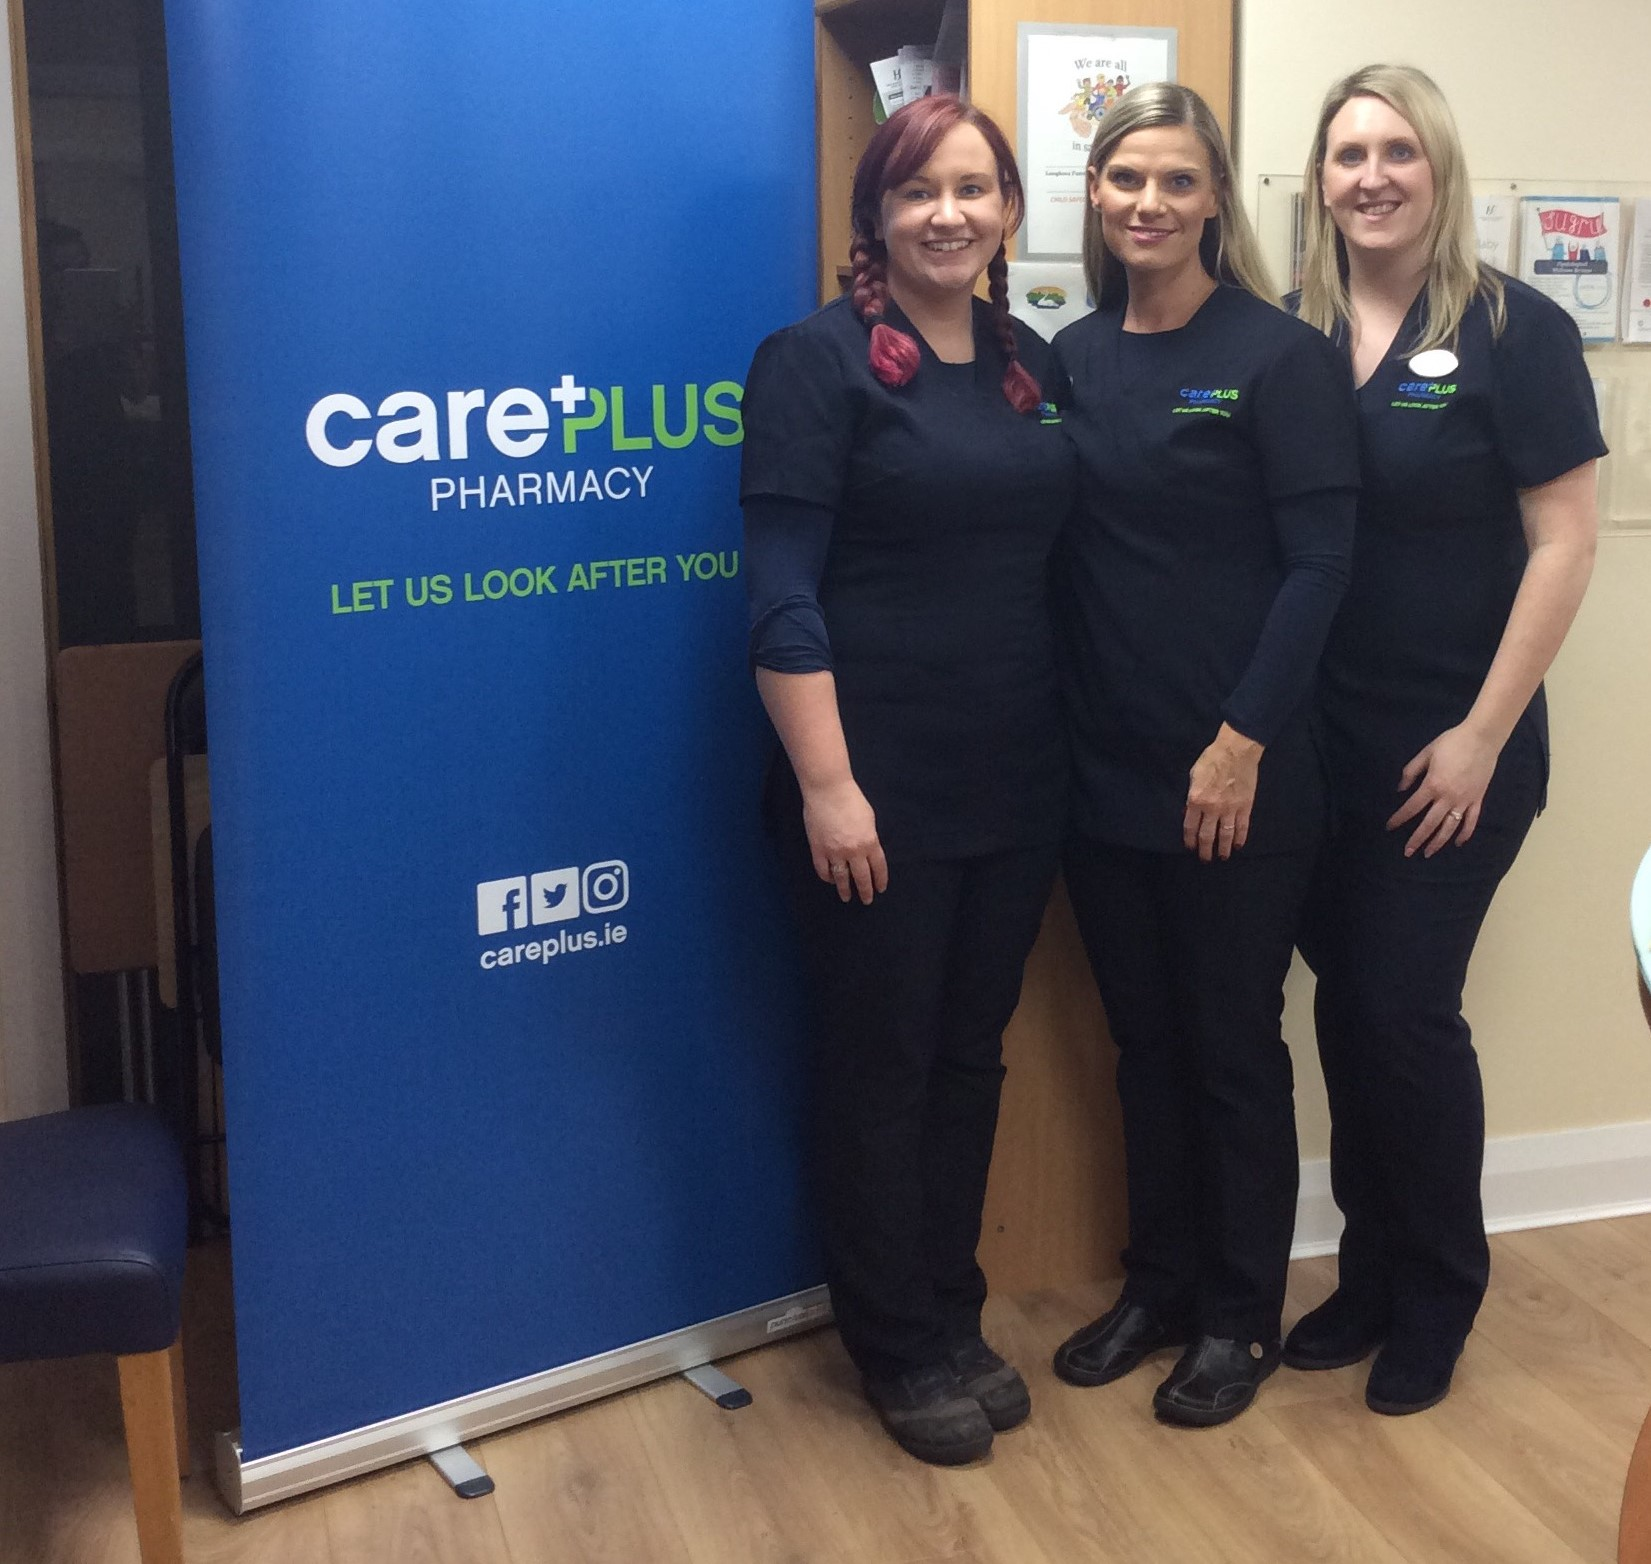 staff at Killian's CarePlus Pharmacy pediatric first aid event